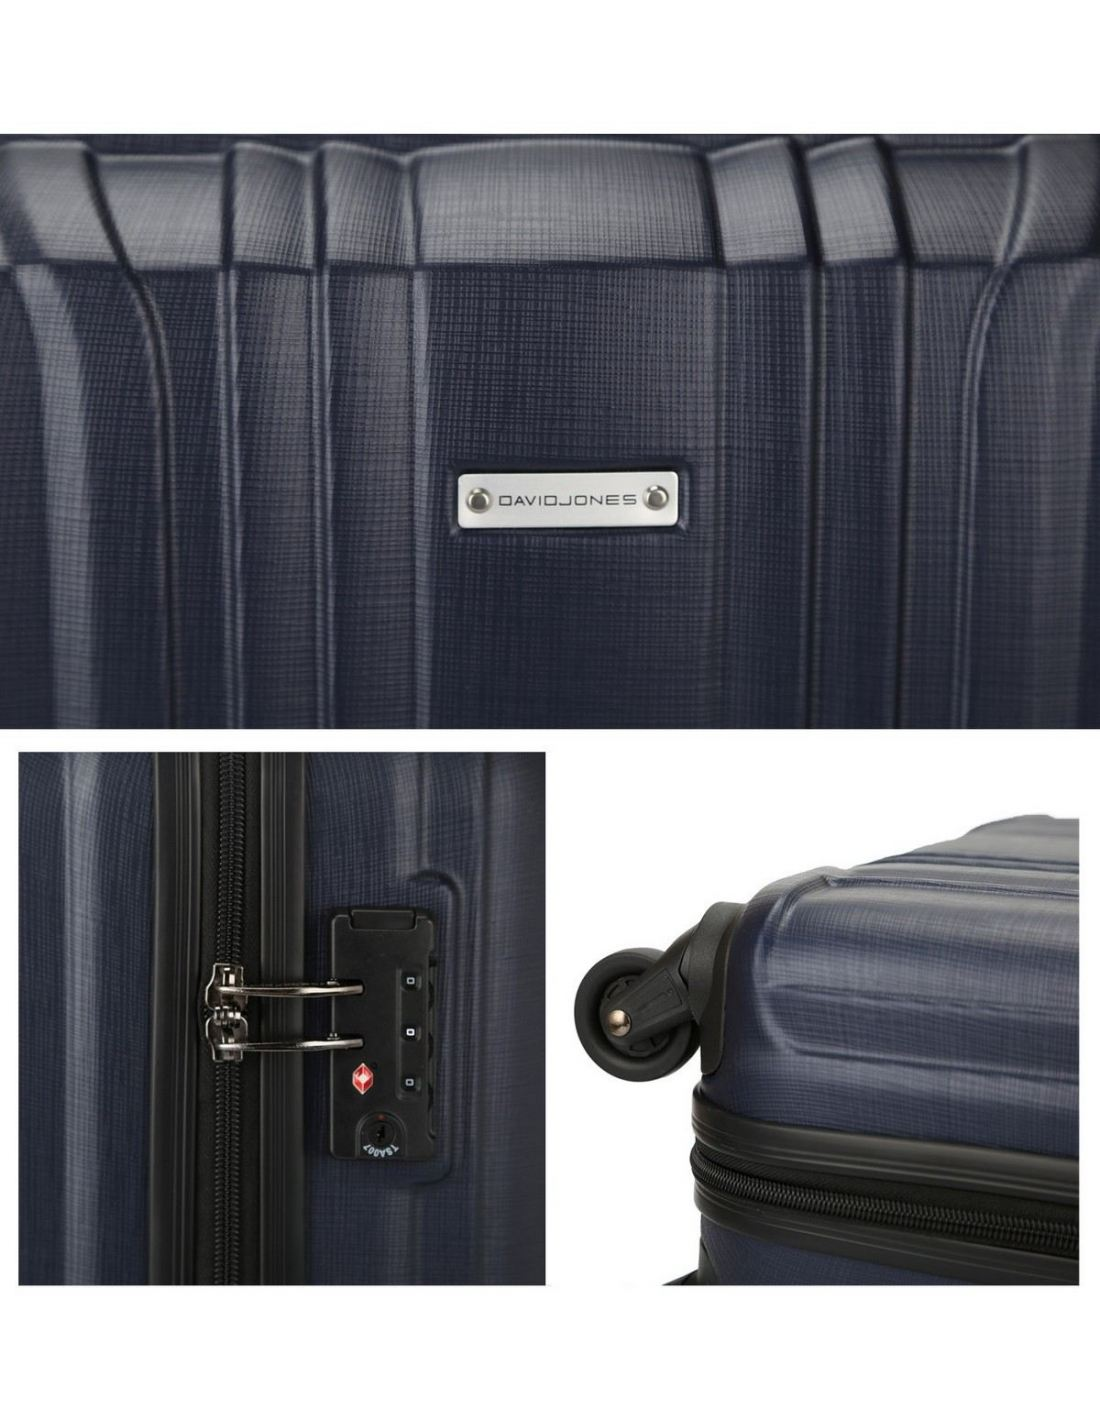 Valise Cabine 55x40x20 David Jones Valise Cabine Rigide Abs Bagage Trolley 4 Roues Tsa